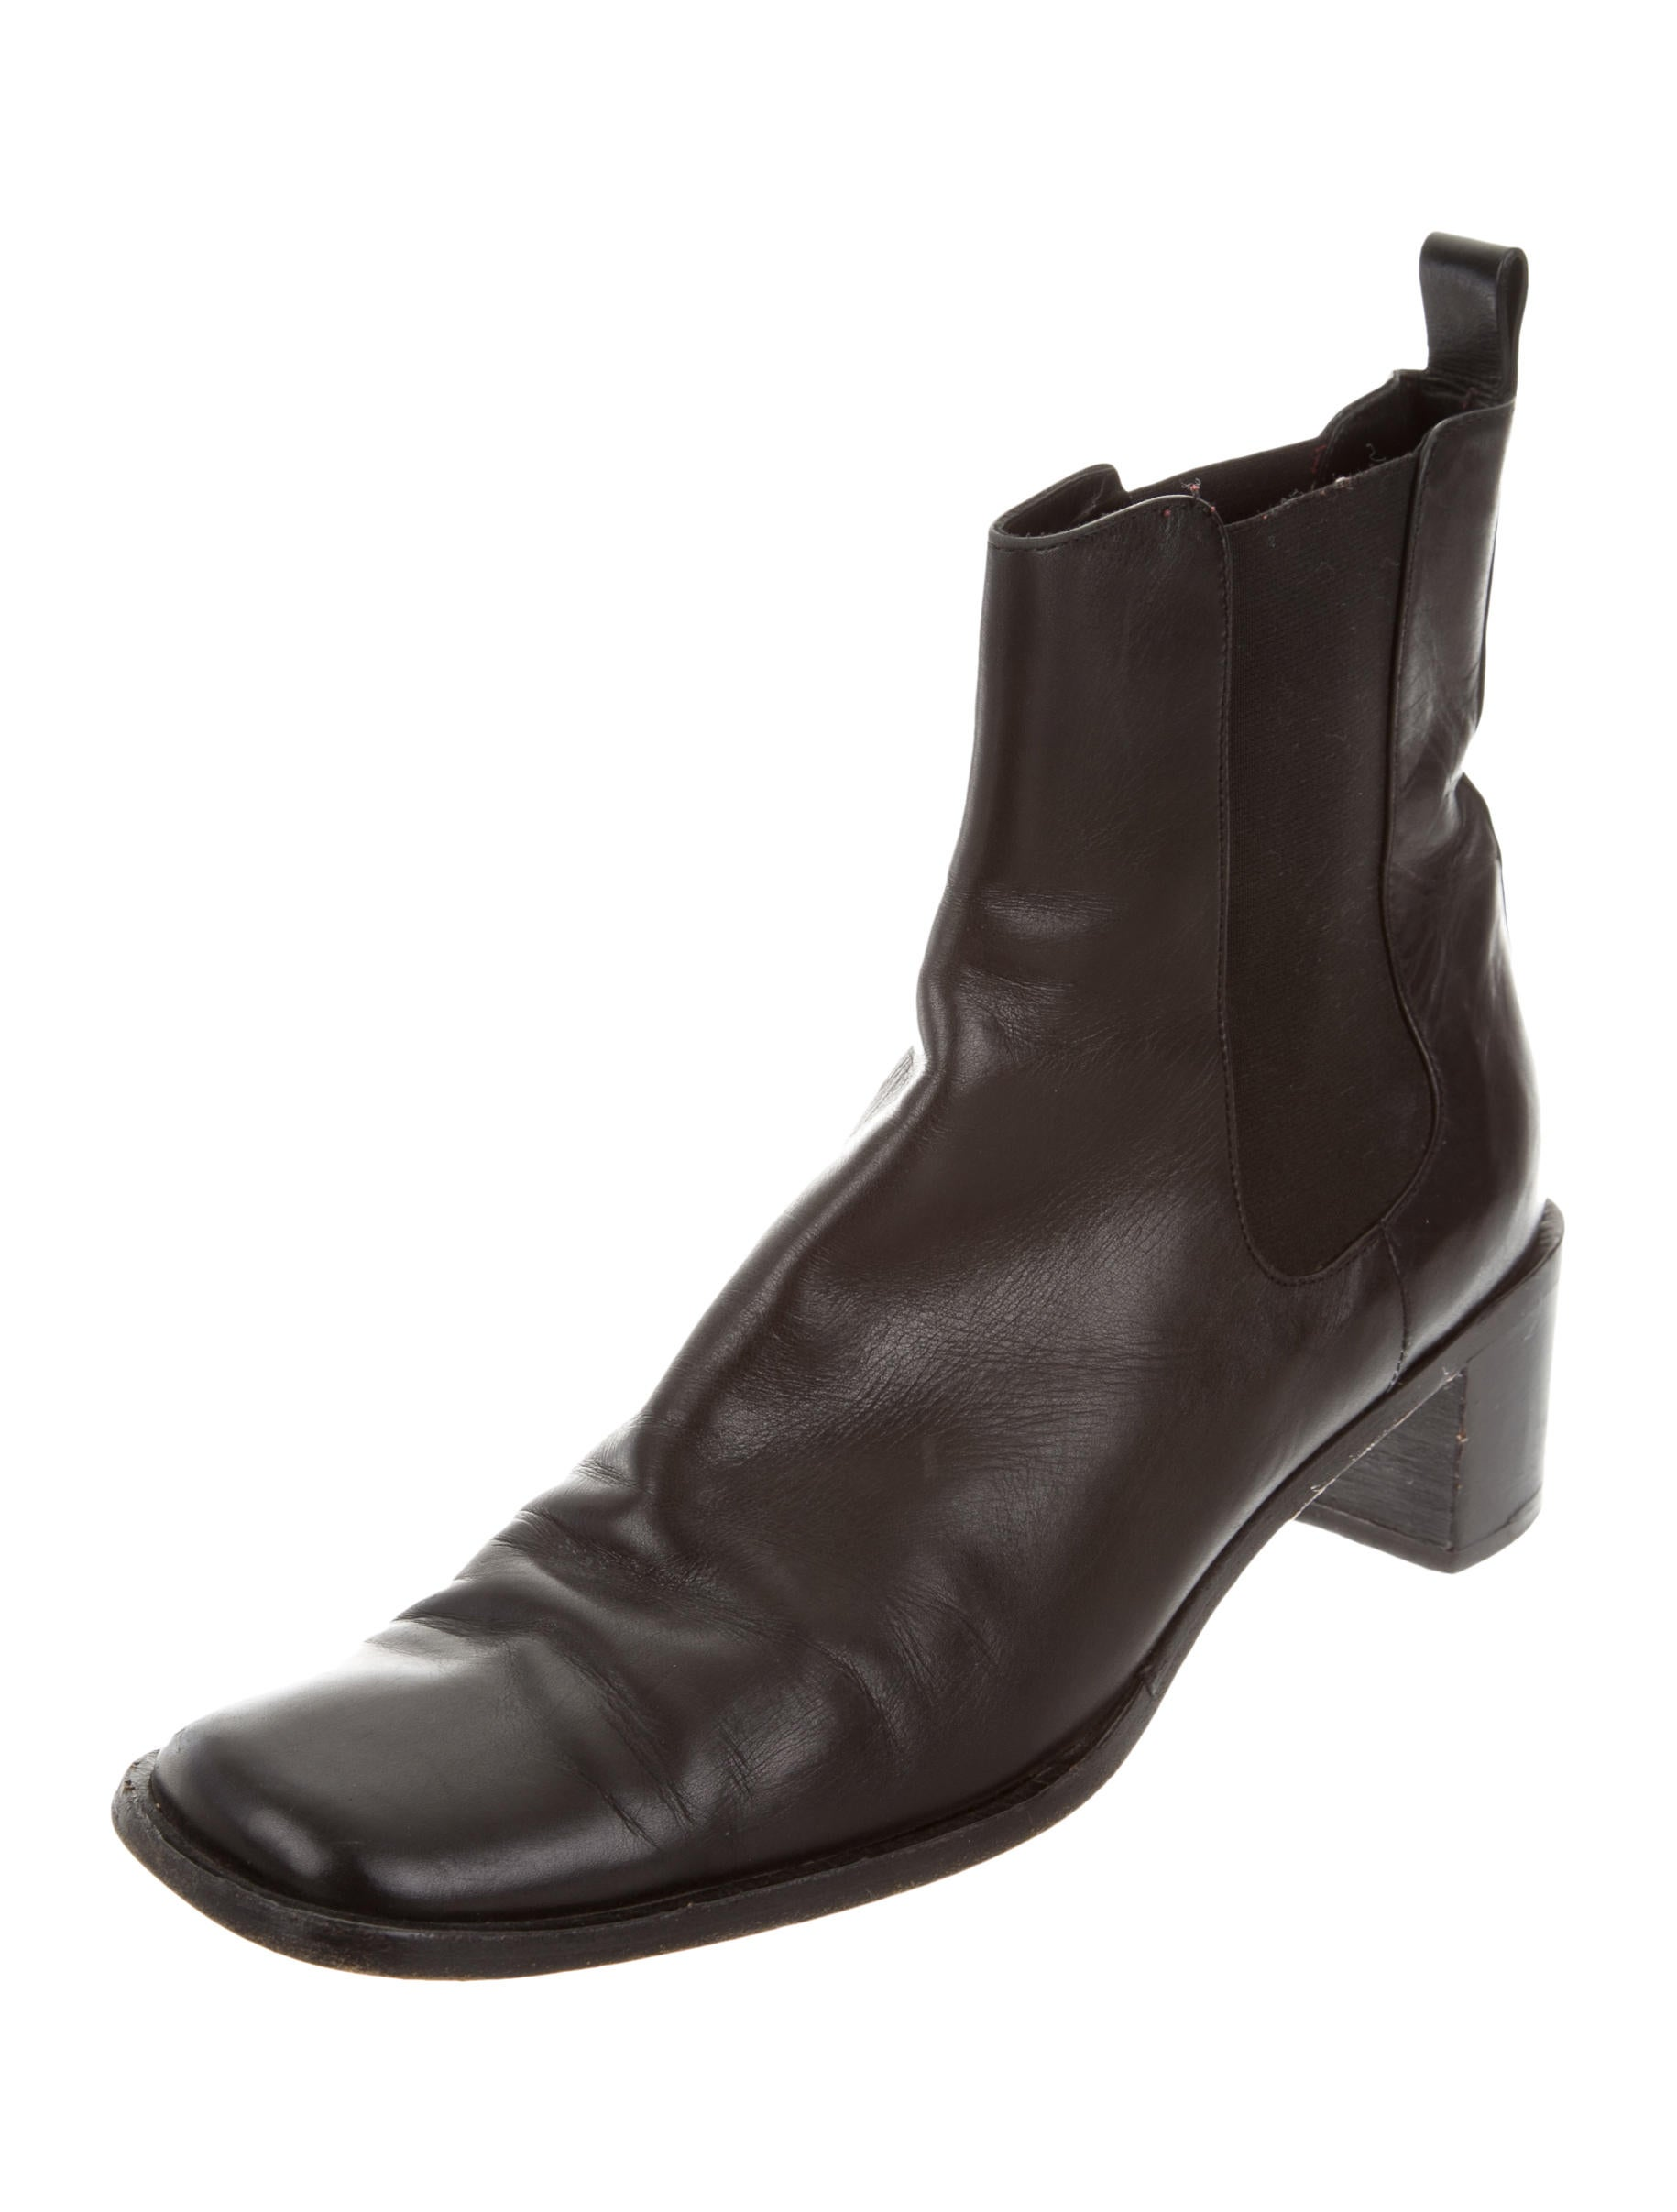 gucci square toe ankle boots shoes guc164154 the